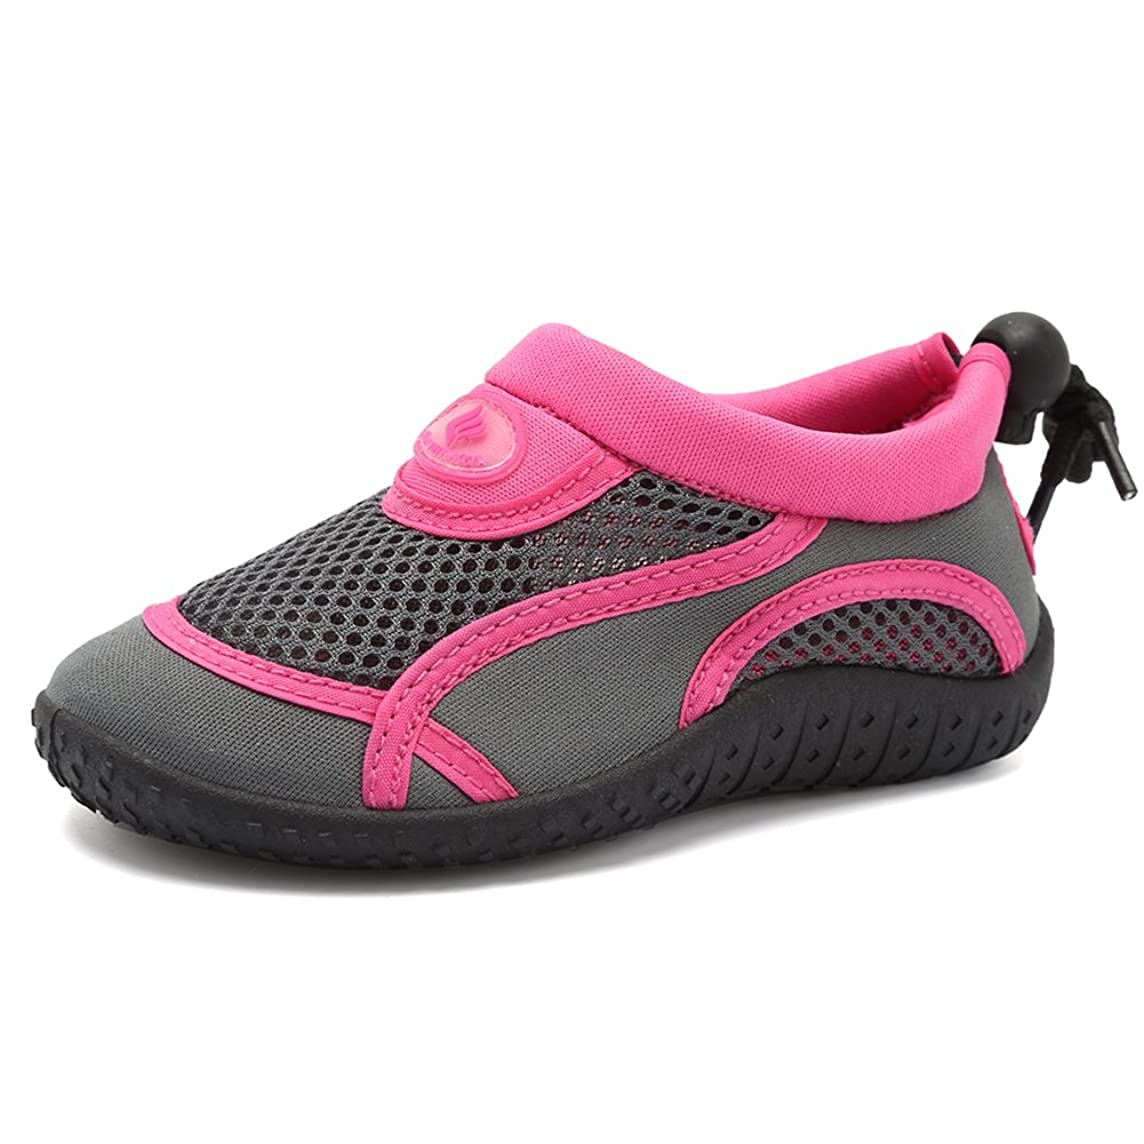 CIOR Toddler Water Shoes Aqua Shoe Swimming Pool Beach Sports Quick Drying Athletic Shoes for Girls and Boys